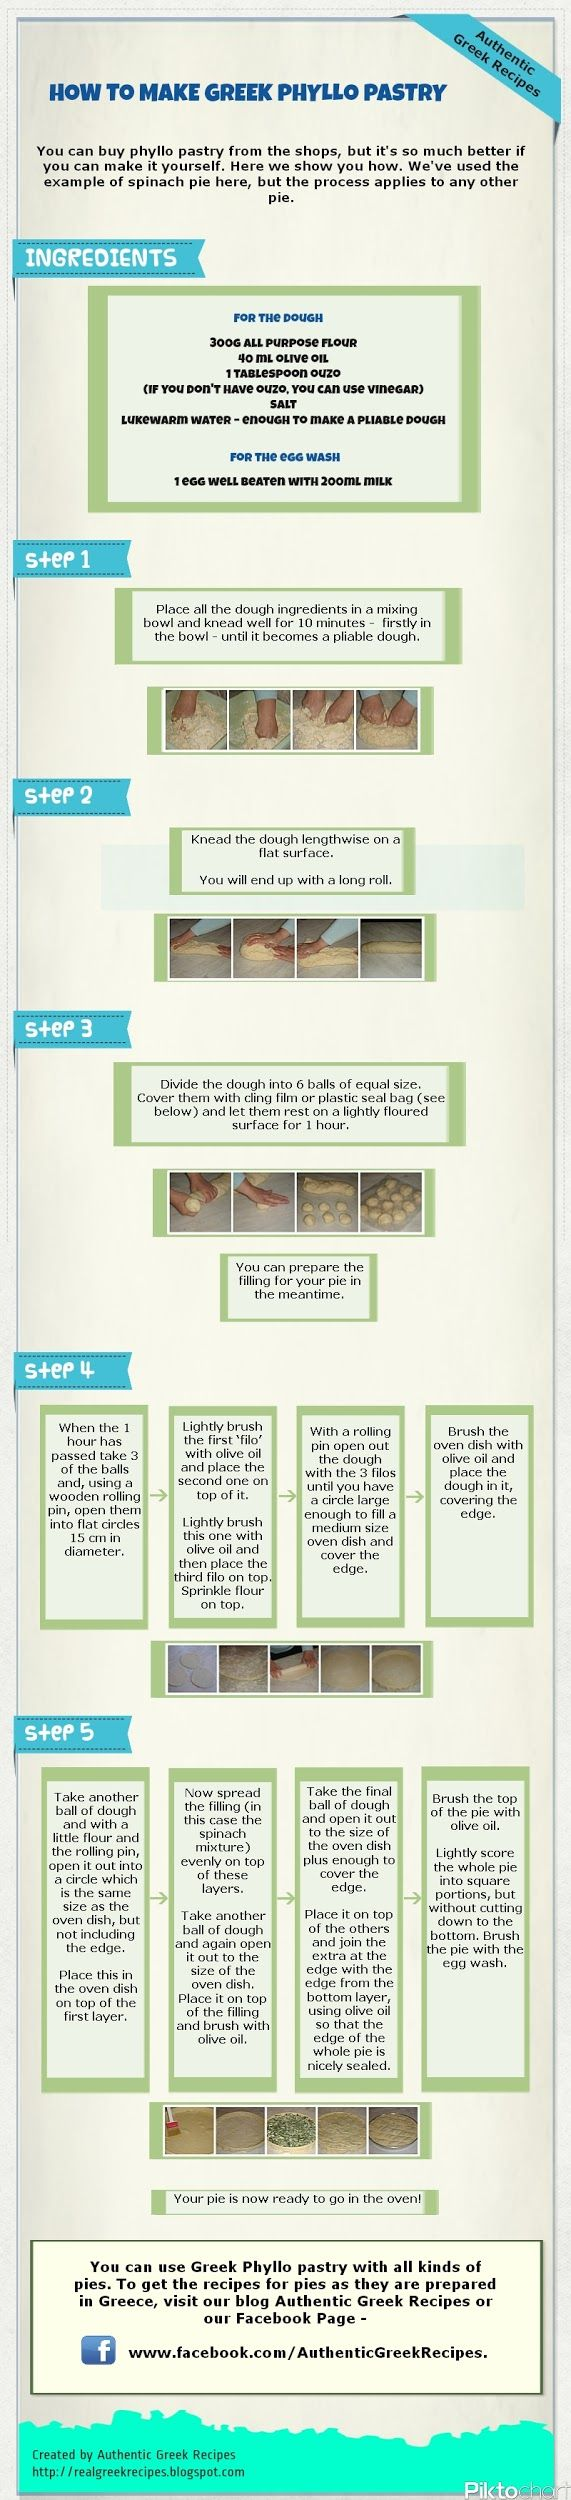 Photo of Authentic Greek Recipes: Infographic – How To Make Greek Phyllo Pastry